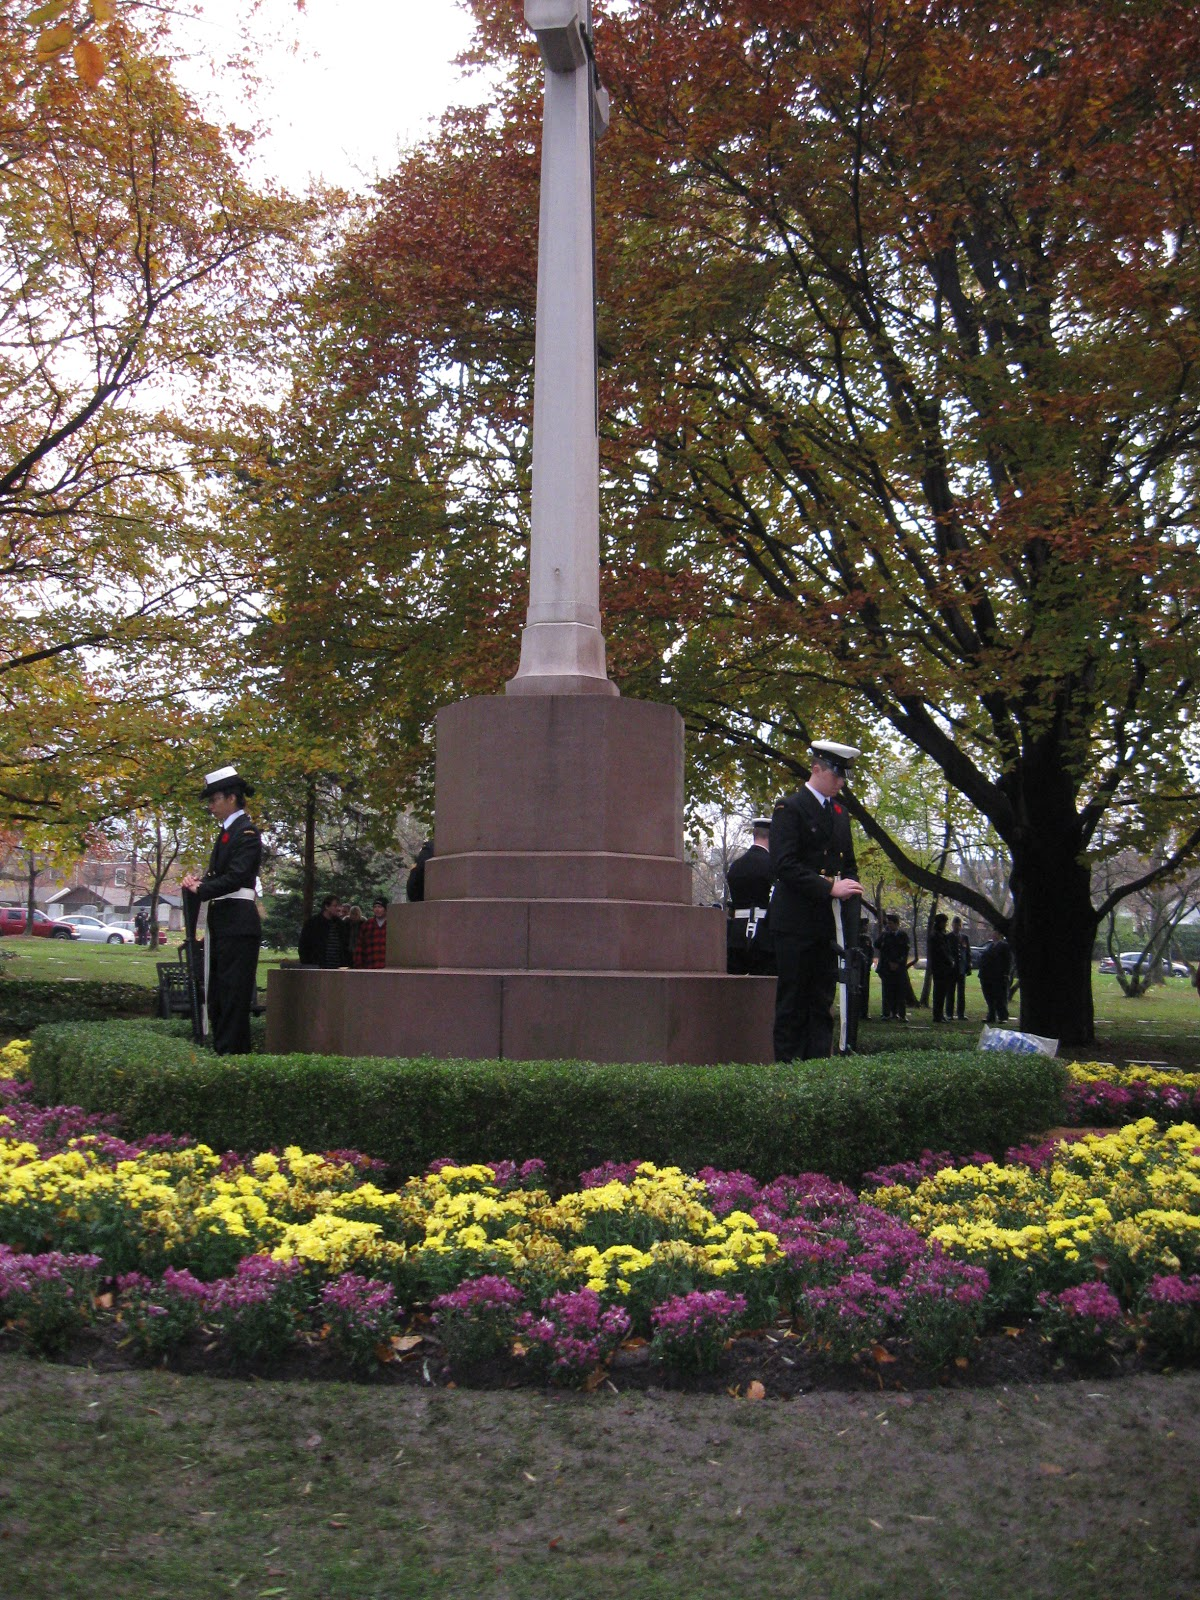 joan tintor photo essay remembrance day prospect cemetery toronto cenotaph and honour guard